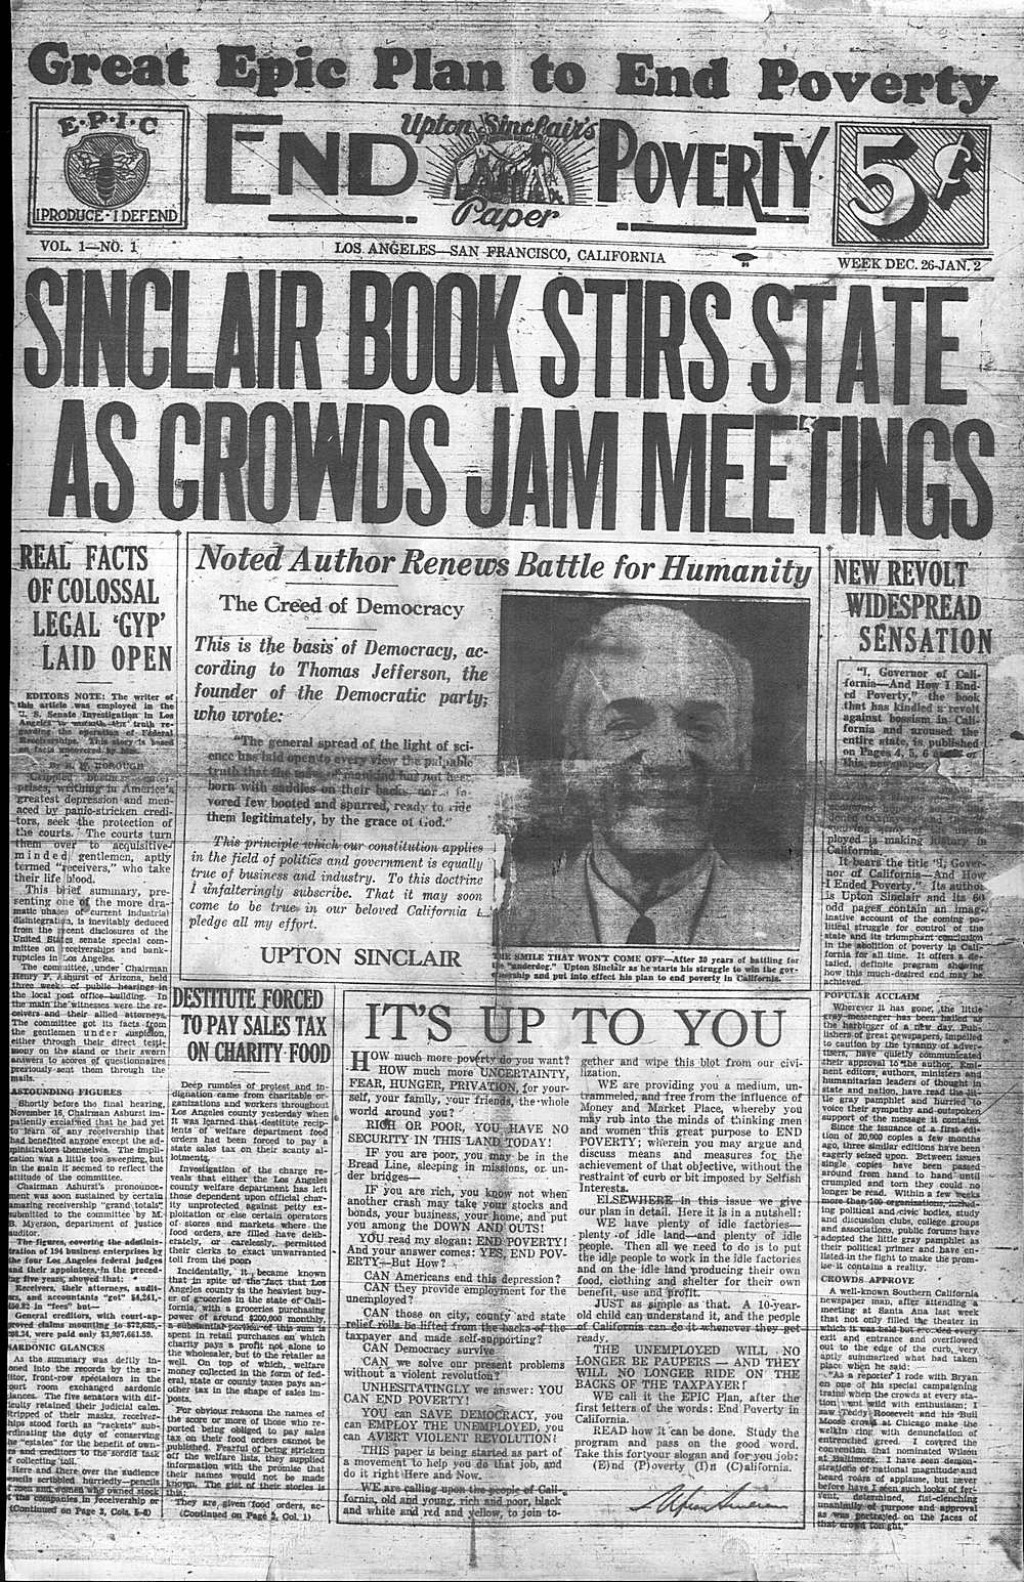 006 Epic News 02p1 Essay Example The Jungle Upton Sinclair Book Rare Review Large